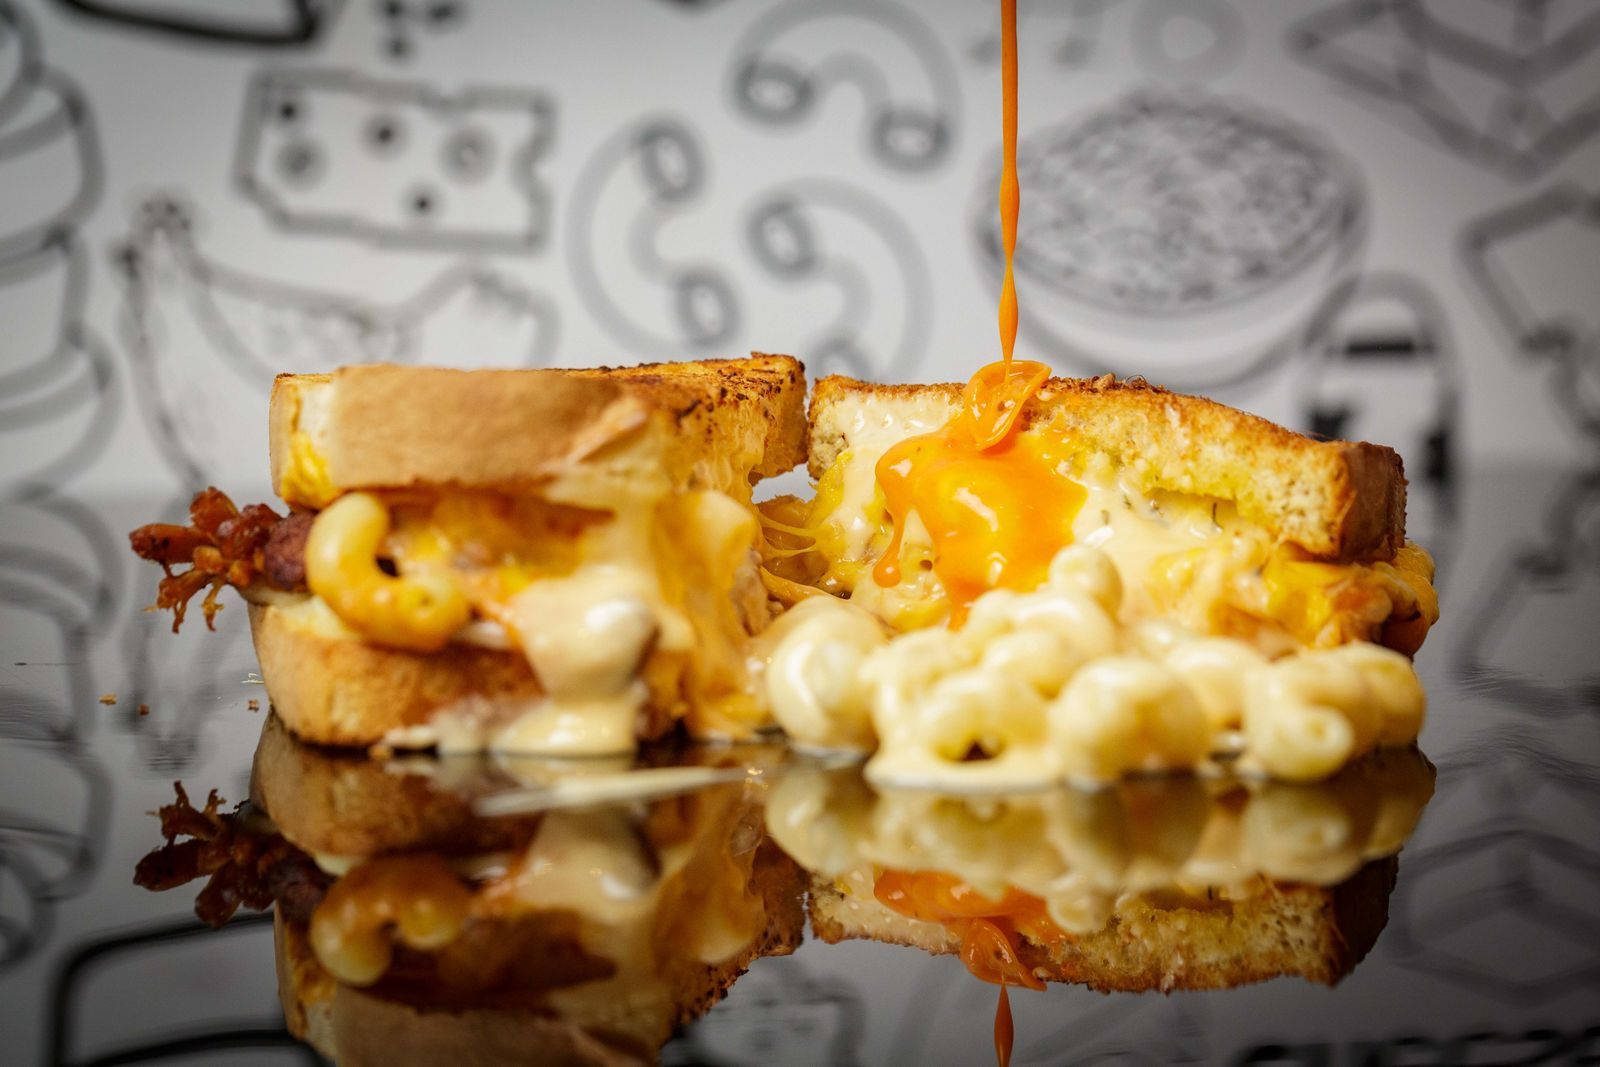 I Heart Mac & Cheese Announces Three Franchise Stores in South Florida Market